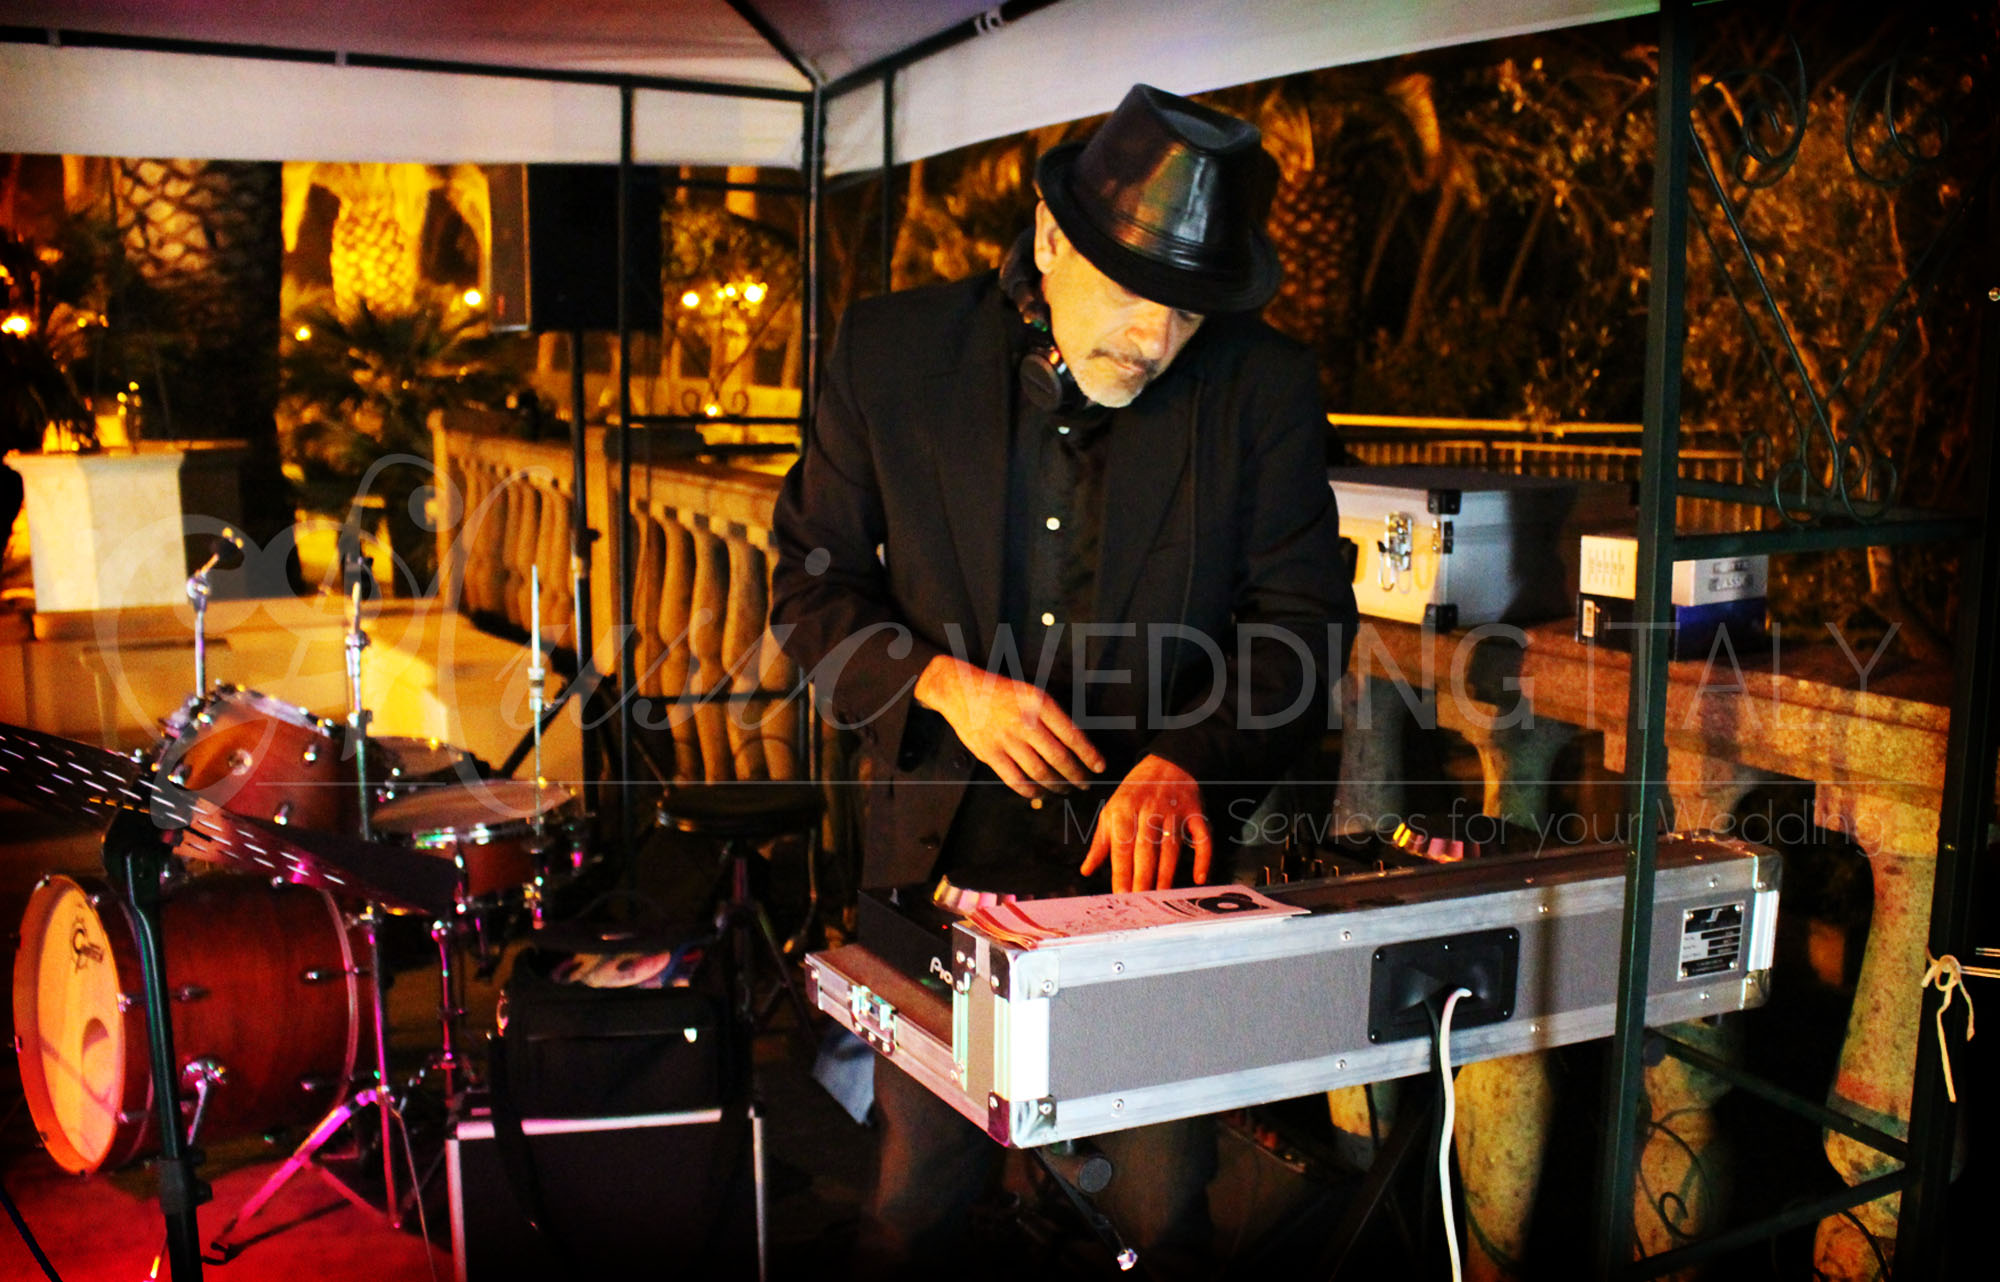 Musica dj matrimonio - Wedding dj